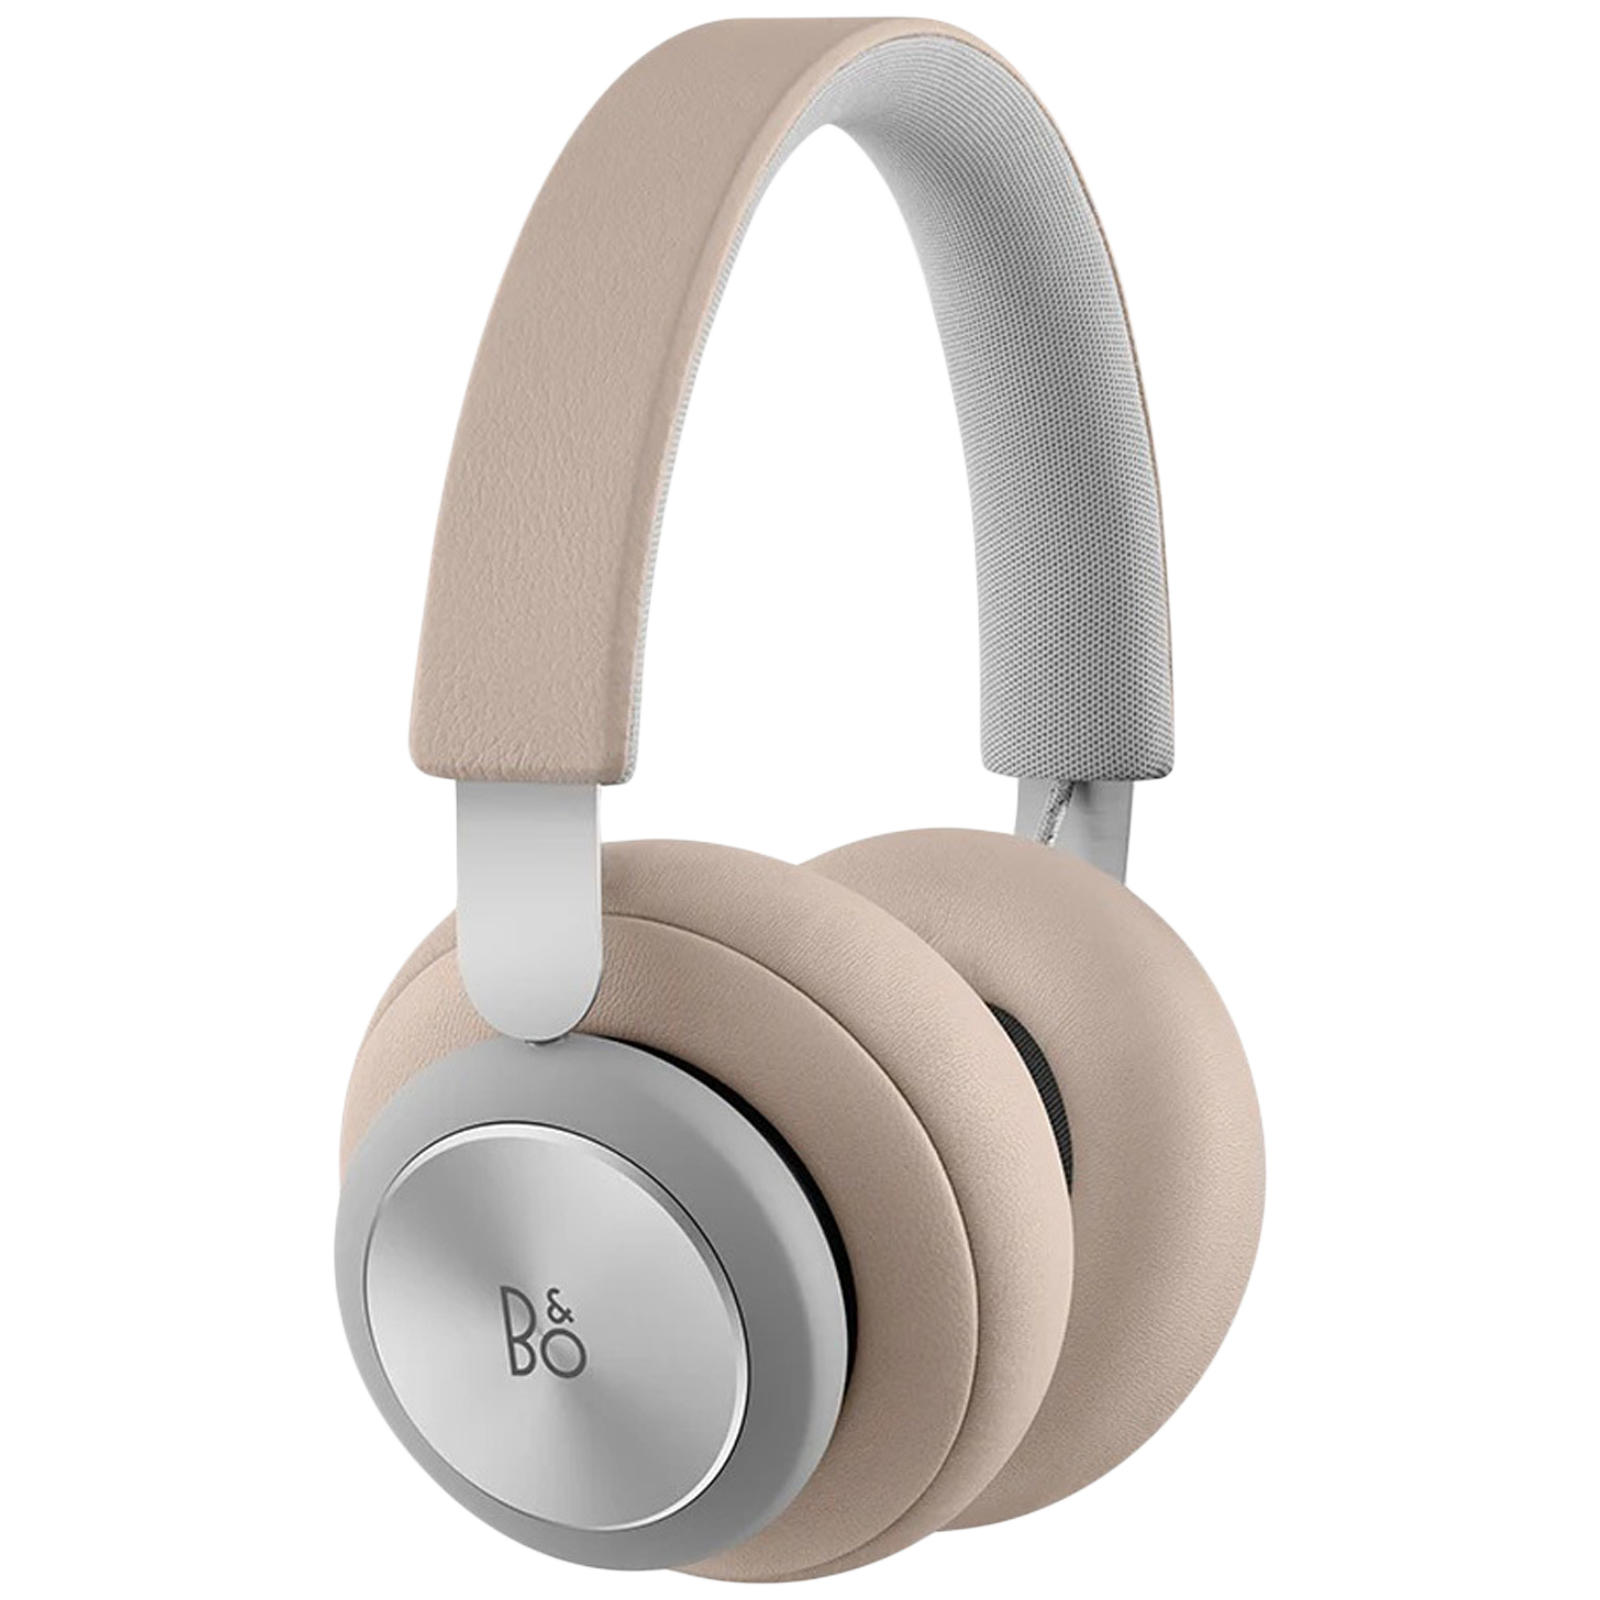 Bang & Olufsen Beoplay H4 2nd Gen Over-Ear Passive Noise Cancellation Wireless Headphone with Mic (Bluetooth 4.2, Google Assistant Support, BO-BPH4-LSTN, Limestone)_1